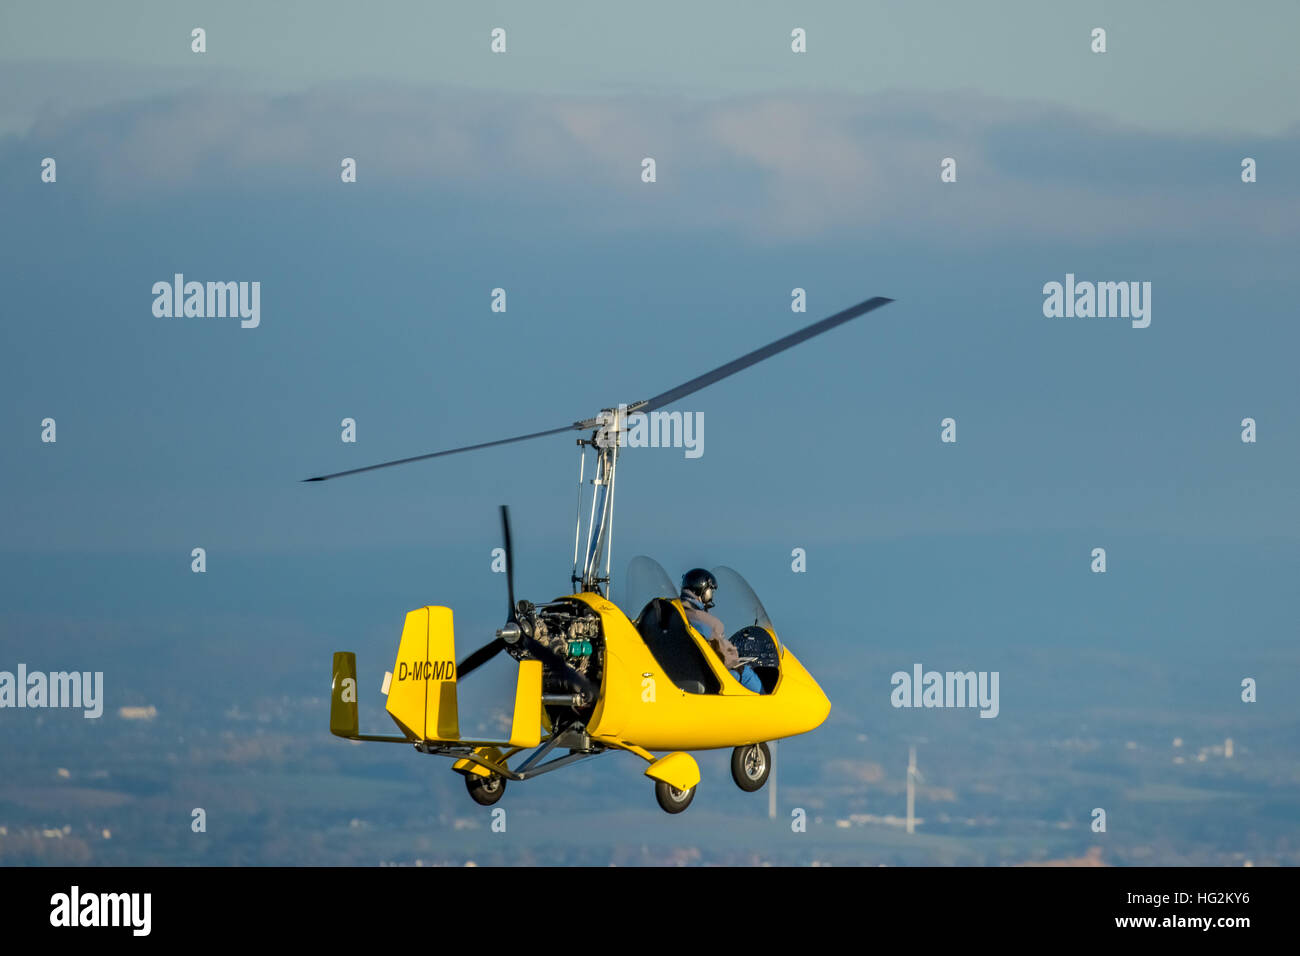 Aerial view, Gyrocopter over Witten, D-MCMD, Ultra Leichhardt aircraft, sports equipment, fly, Witten, Ruhr area, - Stock Image